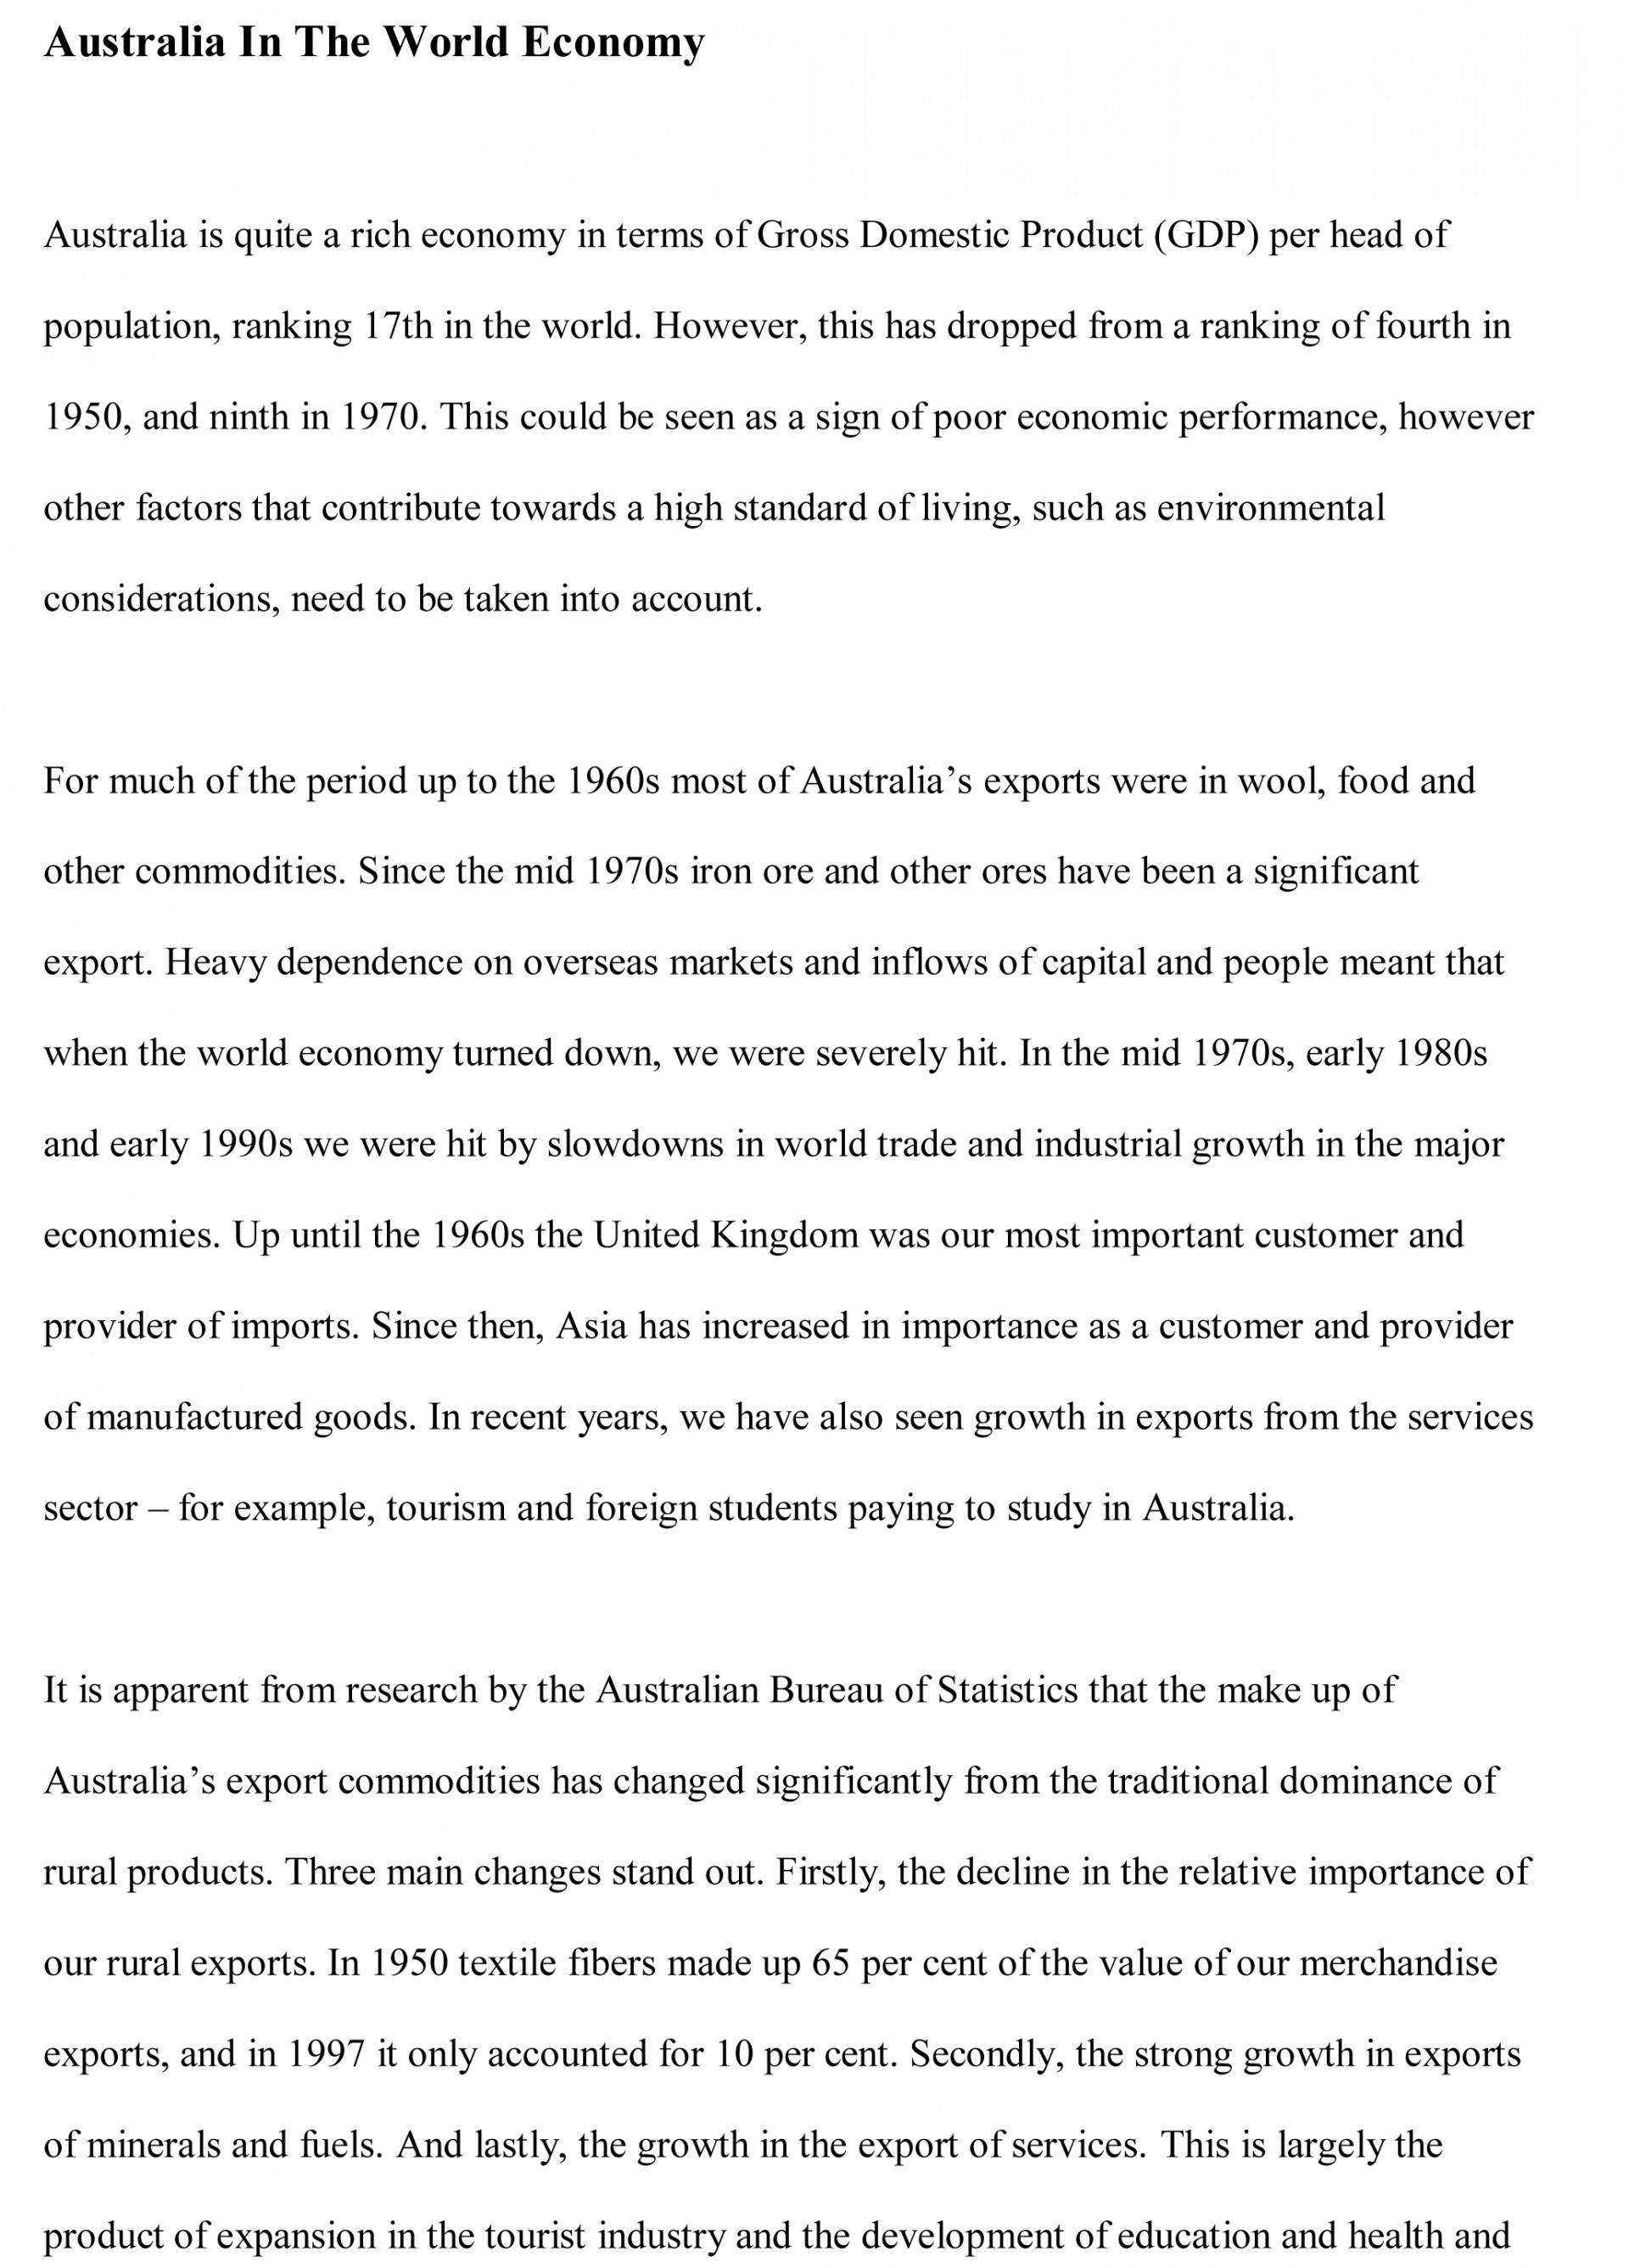 005 Free Write Essay Example Economics Archaicawful Writing Prompts Examples Website To Essays 1920